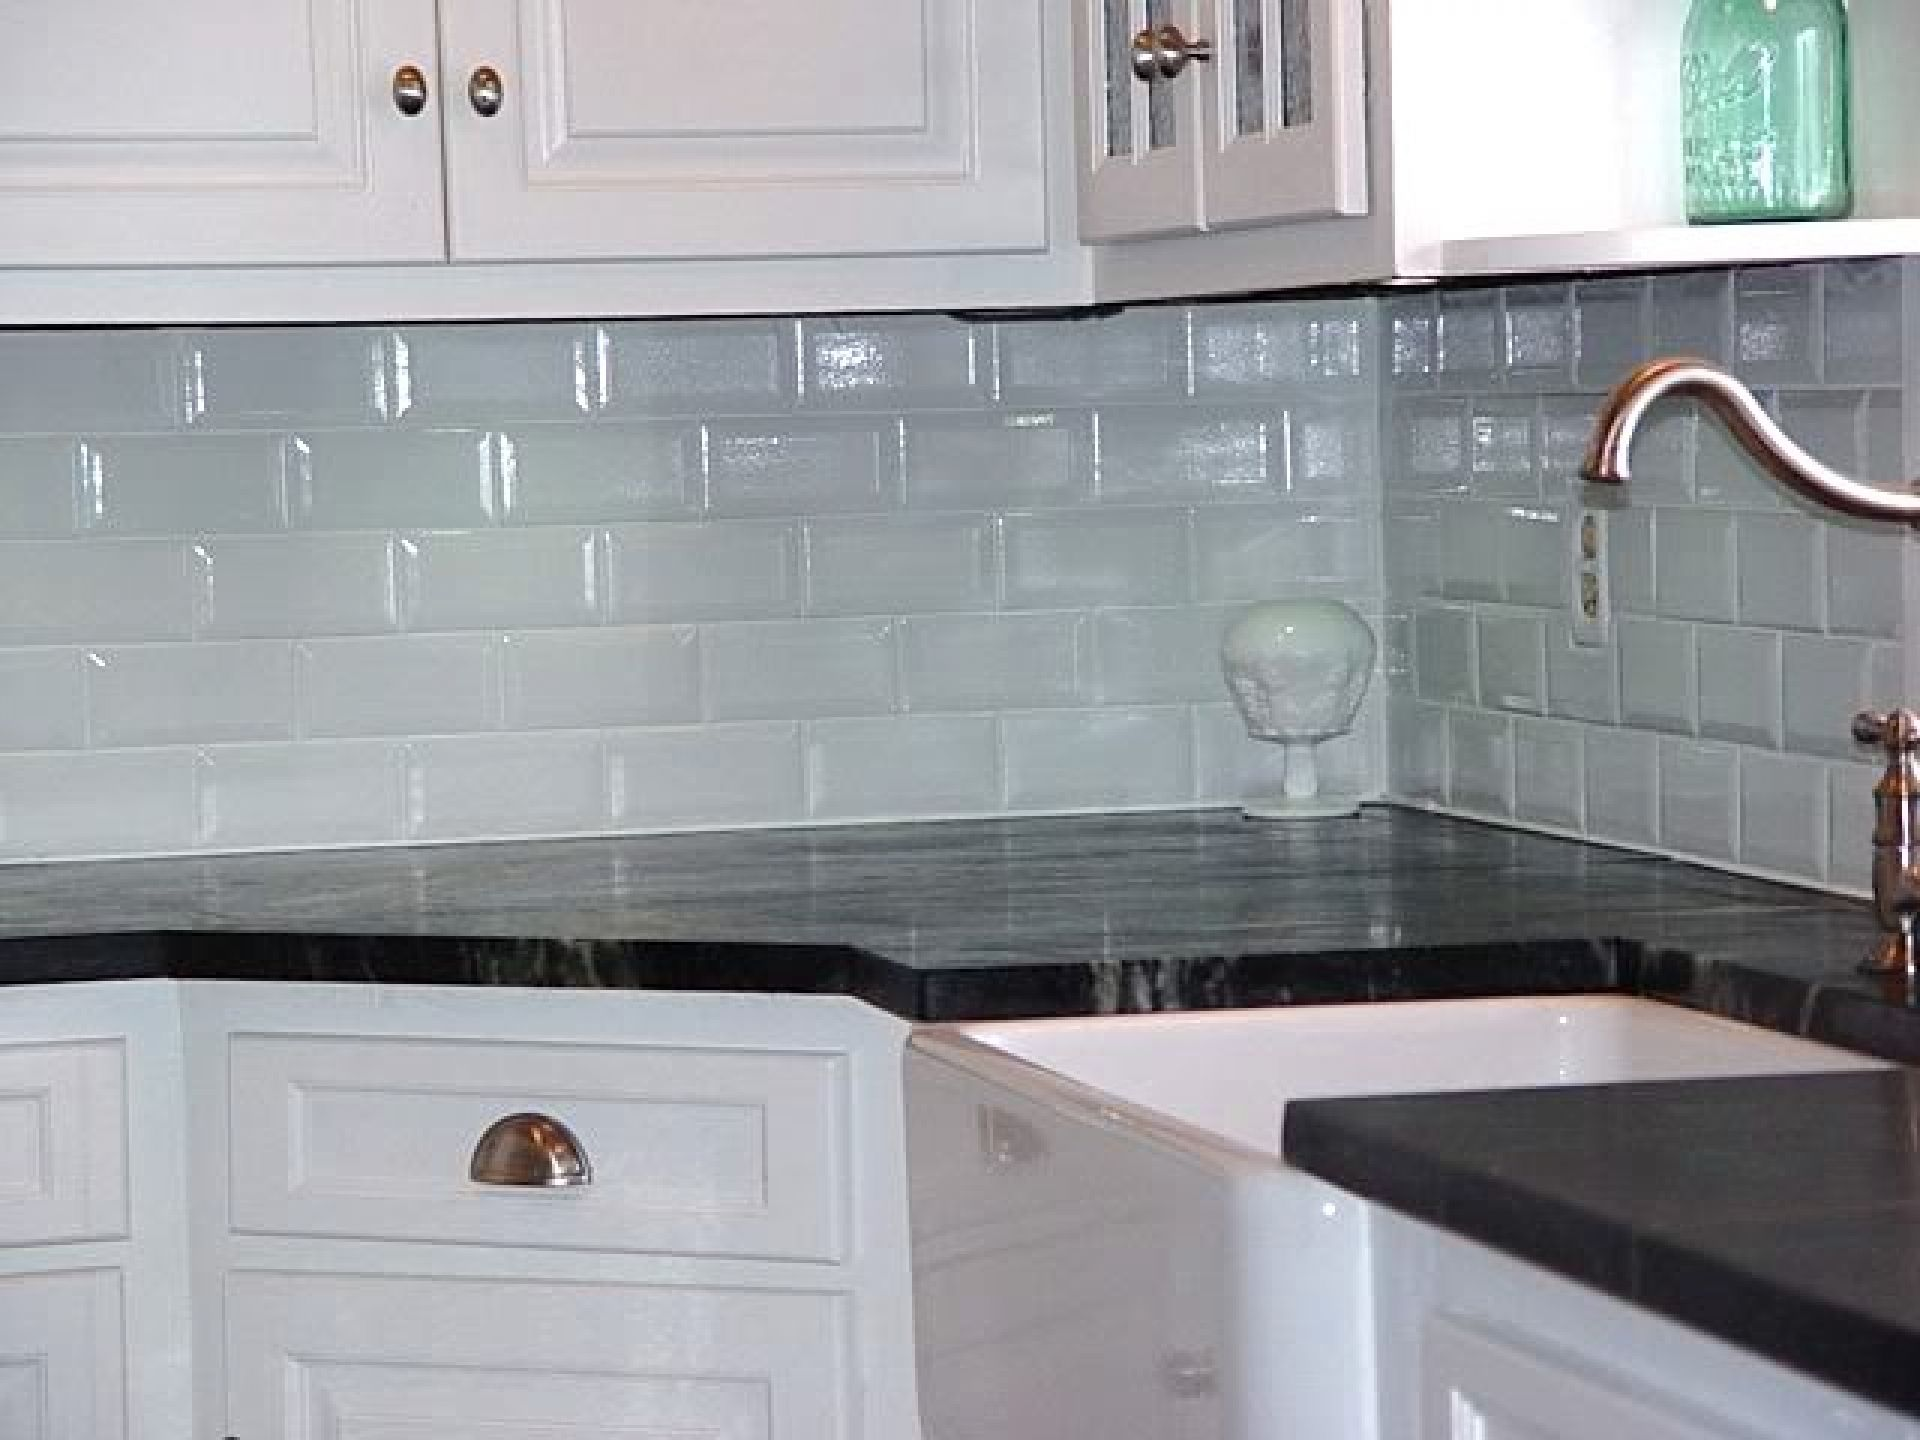 subway tile kitchen backsplash ideas home decorating interior subway tile kitchen backsplash ideas part 16 kitchen glass white subway tile backsplash ideas